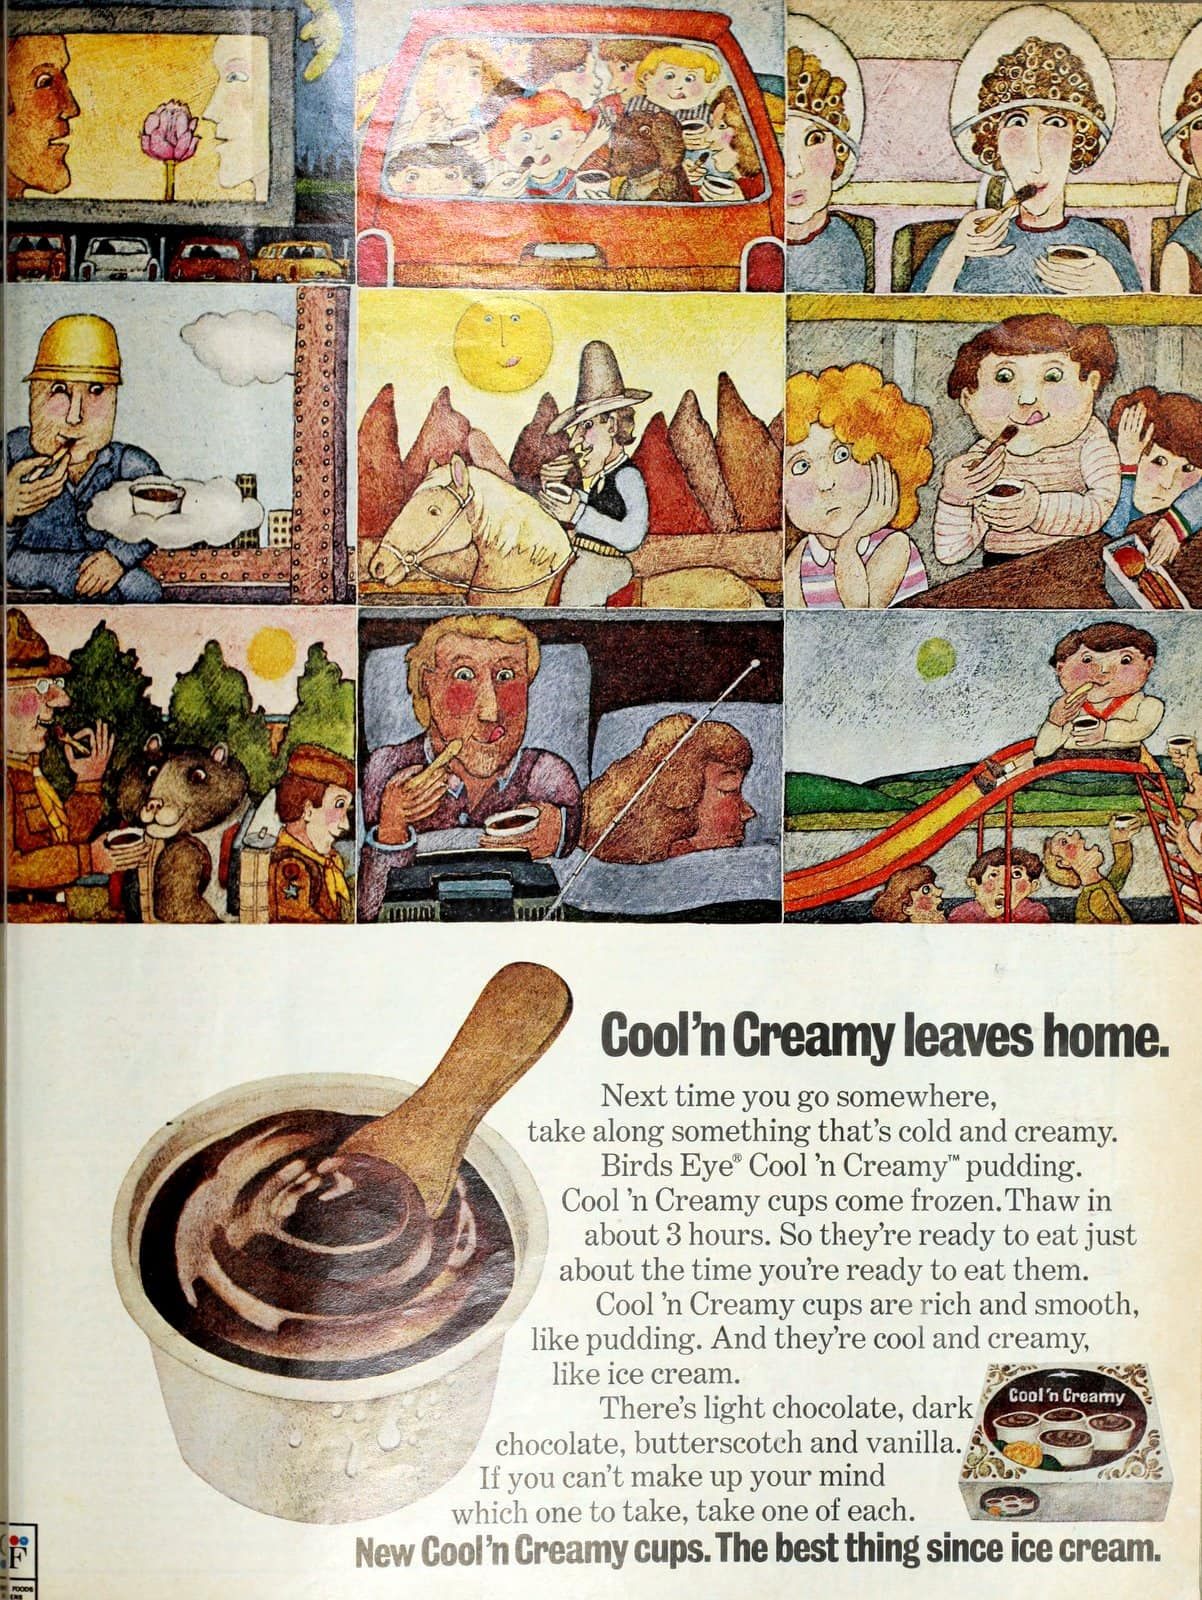 Old Birds Eye Cool n Creamy pudding cups - frozen (1972)